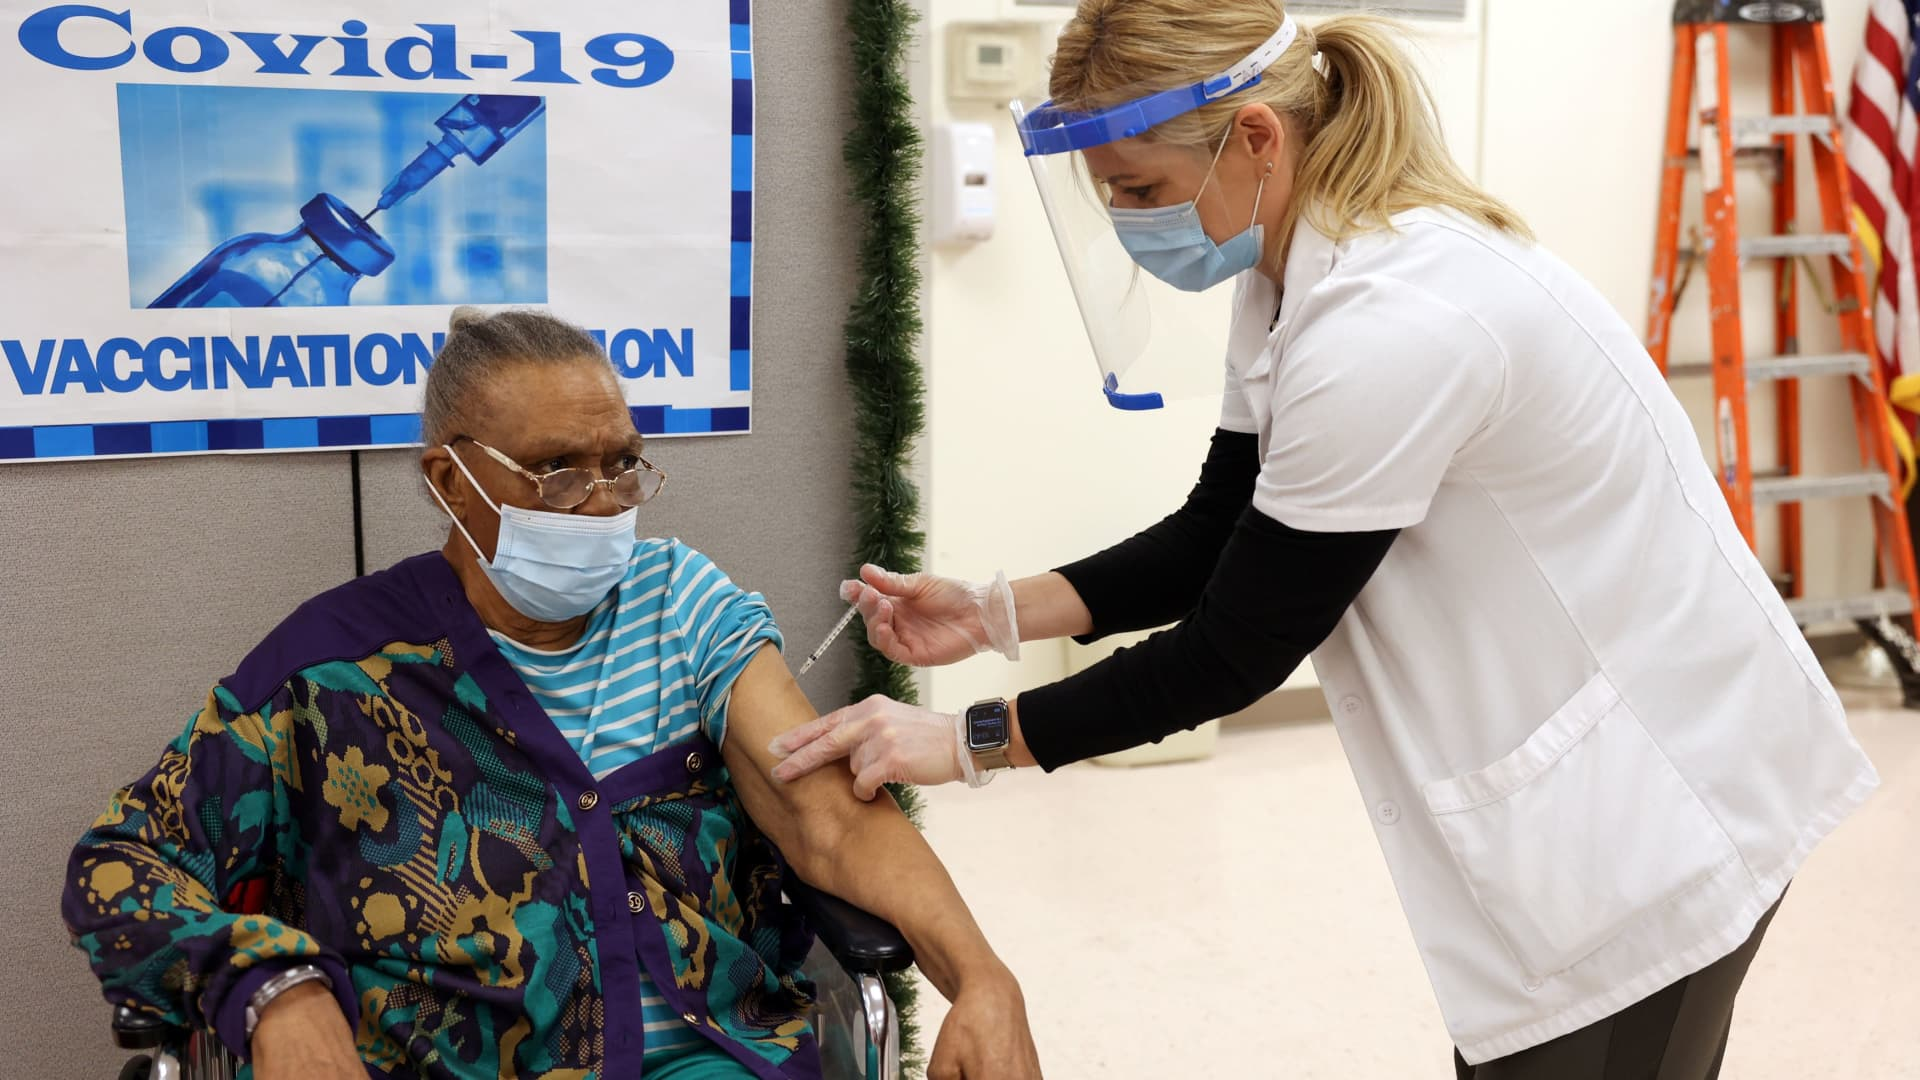 Ina Siler, a patient at Crown Heights Center for Nursing and Rehabilitation, a nursing home facility, receives the Pfizer-BioNTech coronavirus disease (COVID-19) vaccine from Walgreens pharmacist Annette Marshall, in Brooklyn, New York, December 22, 2020.